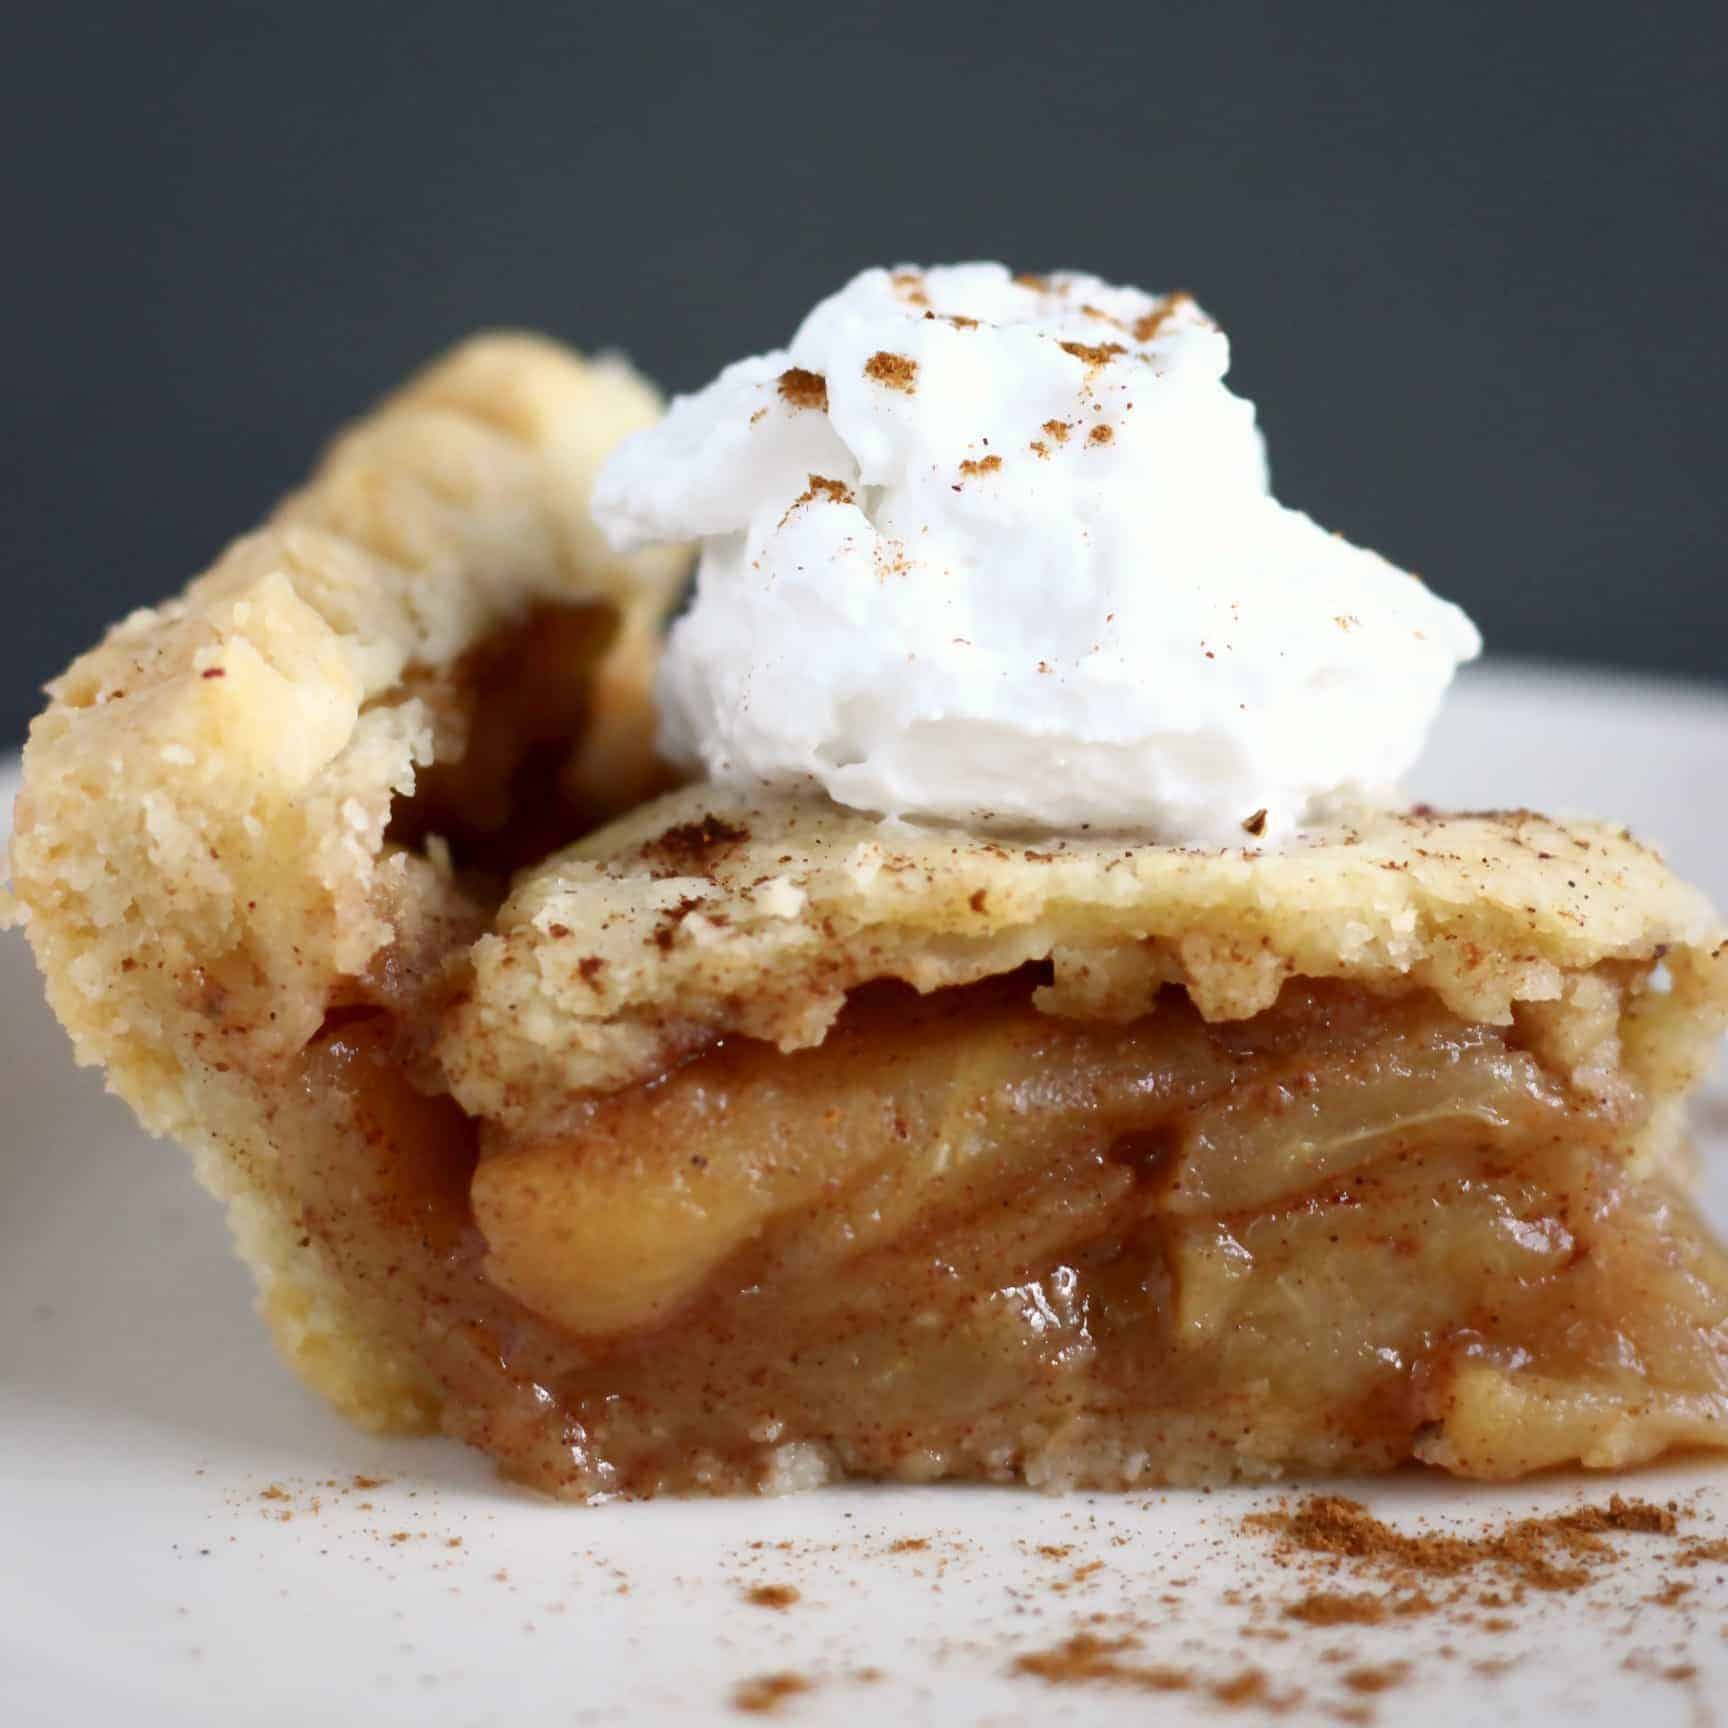 Gluten-Free Vegan Apple Pie